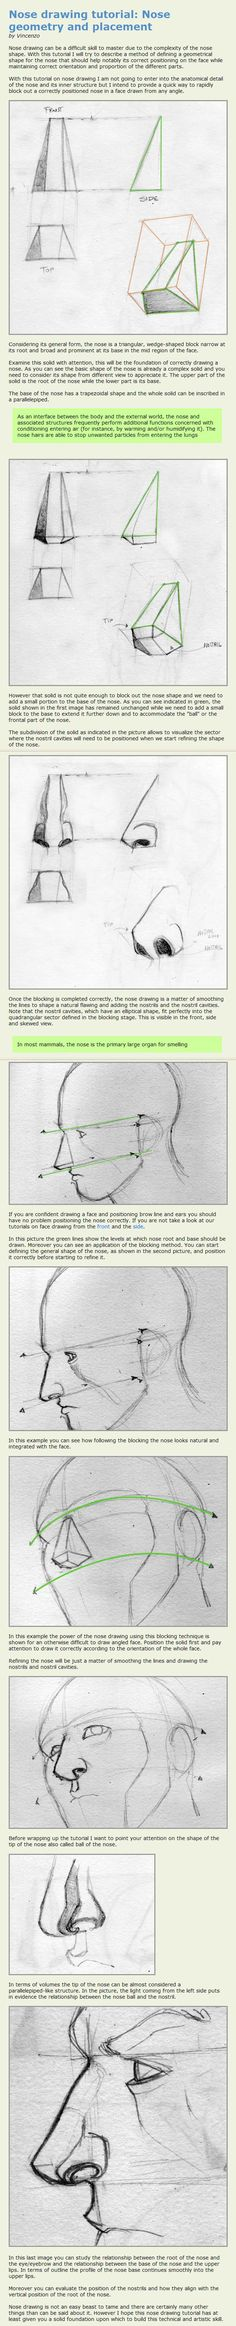 Nose drawing tutorial by Maxduro.deviantart.com on @deviantART   ★ || CHARACTER DESIGN REFERENCES™ (https://www.facebook.com/CharacterDesignReferences & https://www.pinterest.com/characterdesigh) • Love Character Design? Join the #CDChallenge (link→ https://www.facebook.com/groups/CharacterDesignChallenge) Share your unique vision of a theme, promote your art in a community of over 50.000 artists! || ★